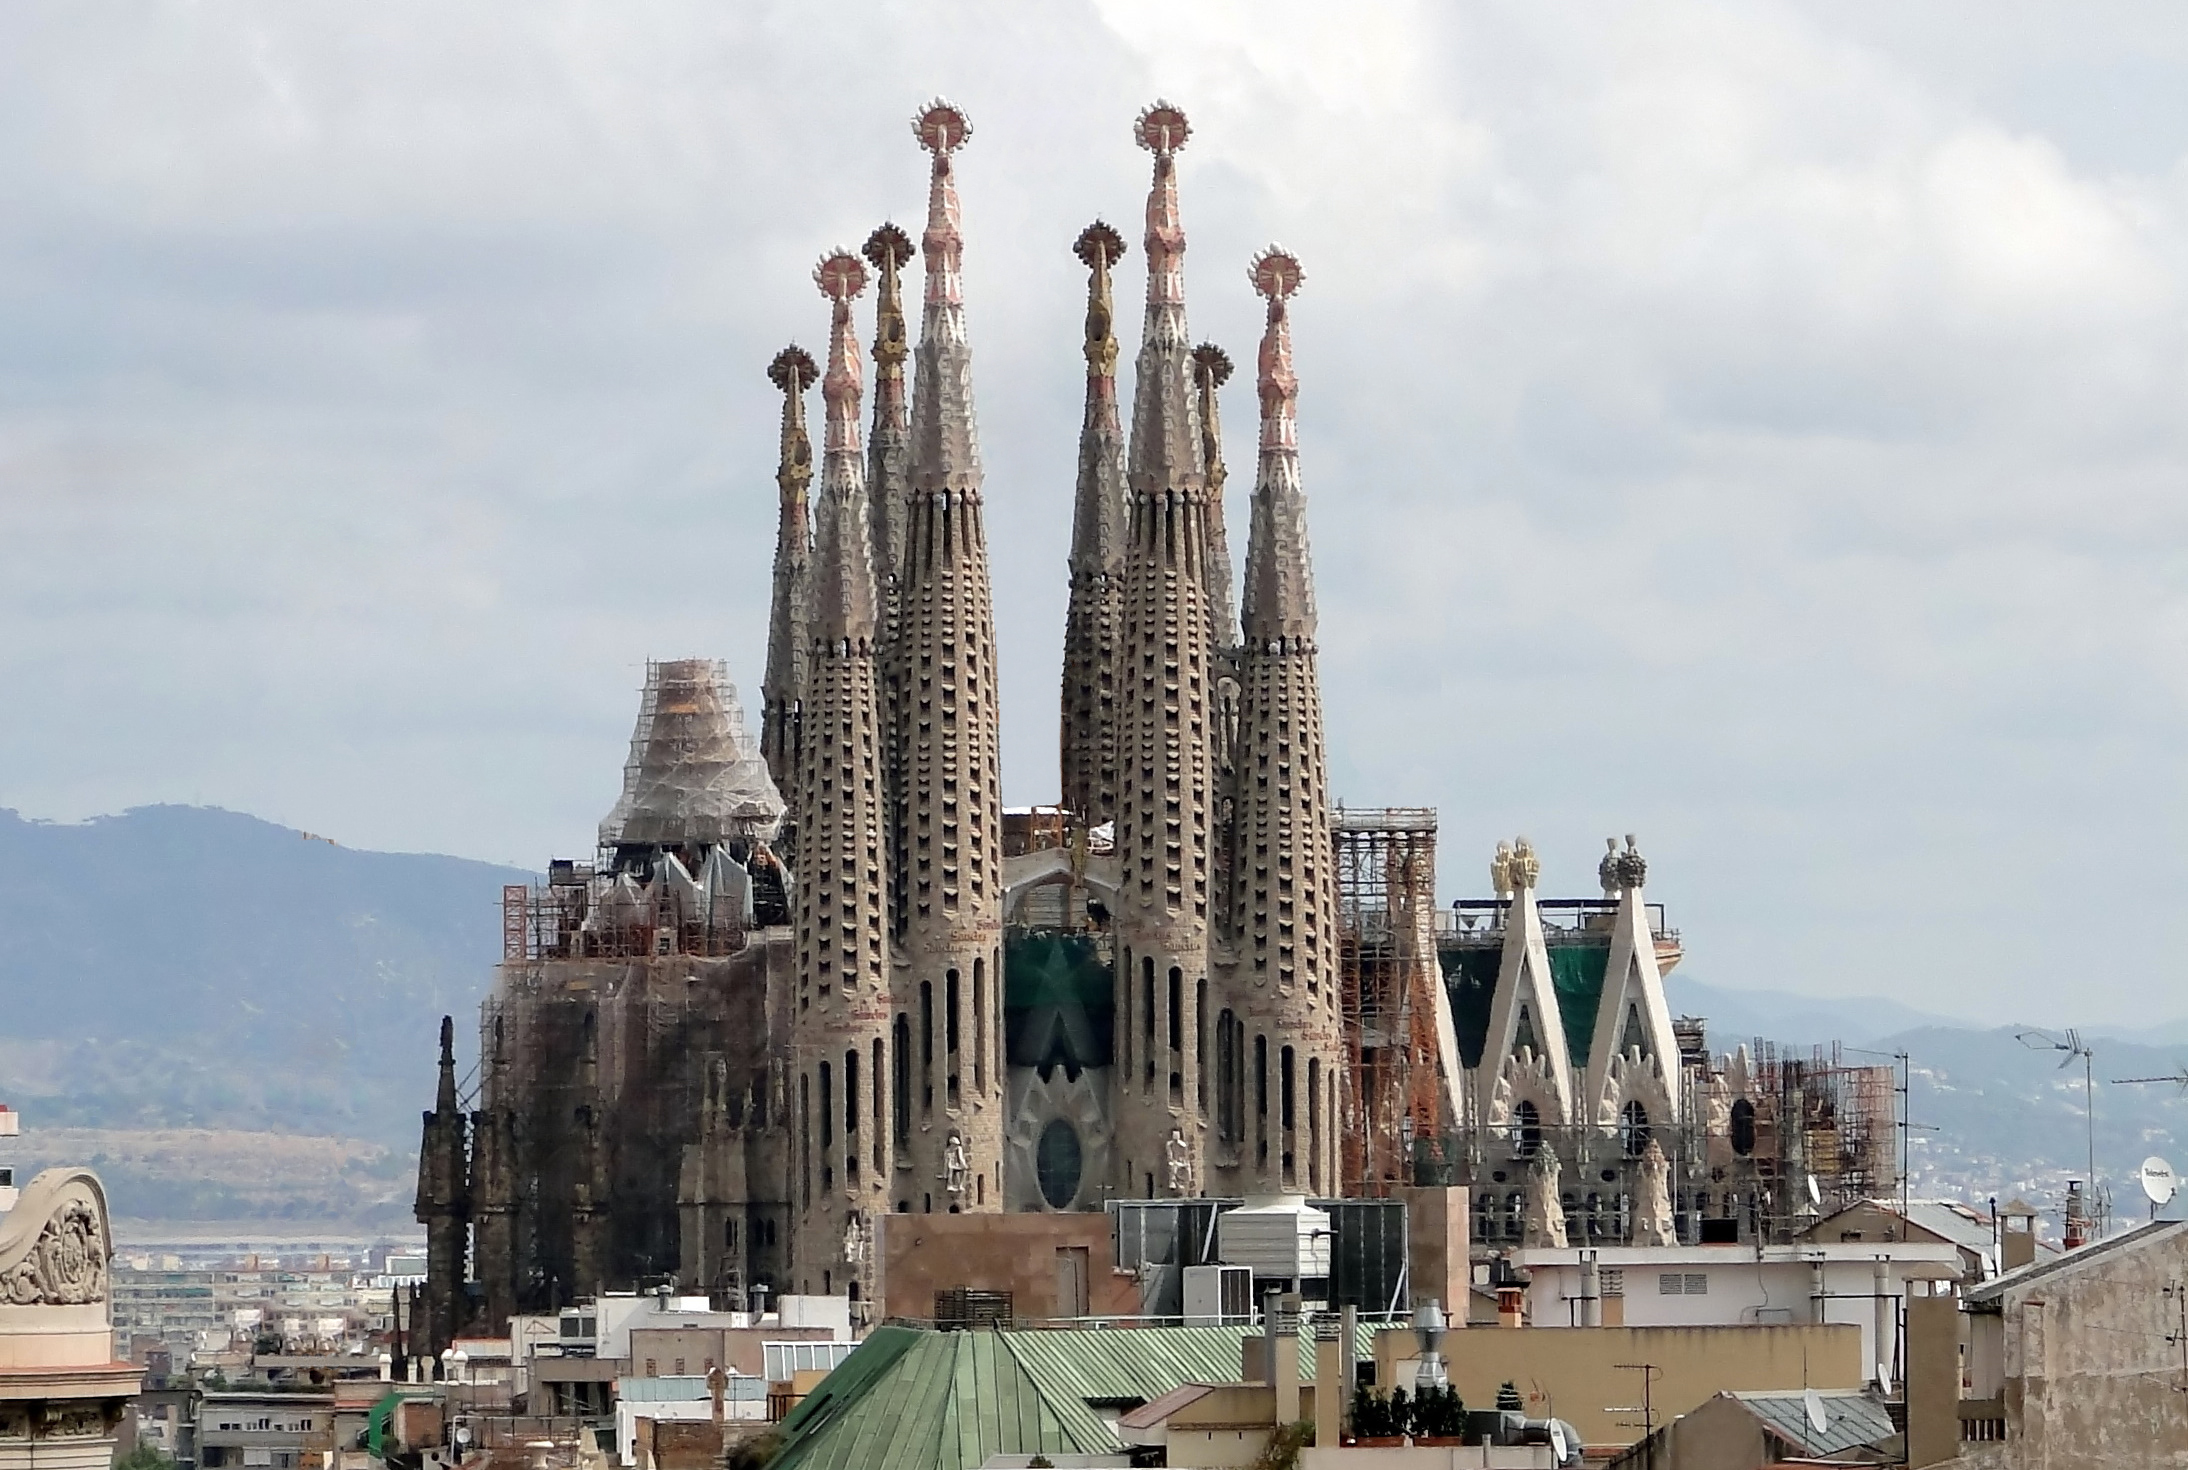 Sagrada Familia v Barceloně, Wikipedie.cs